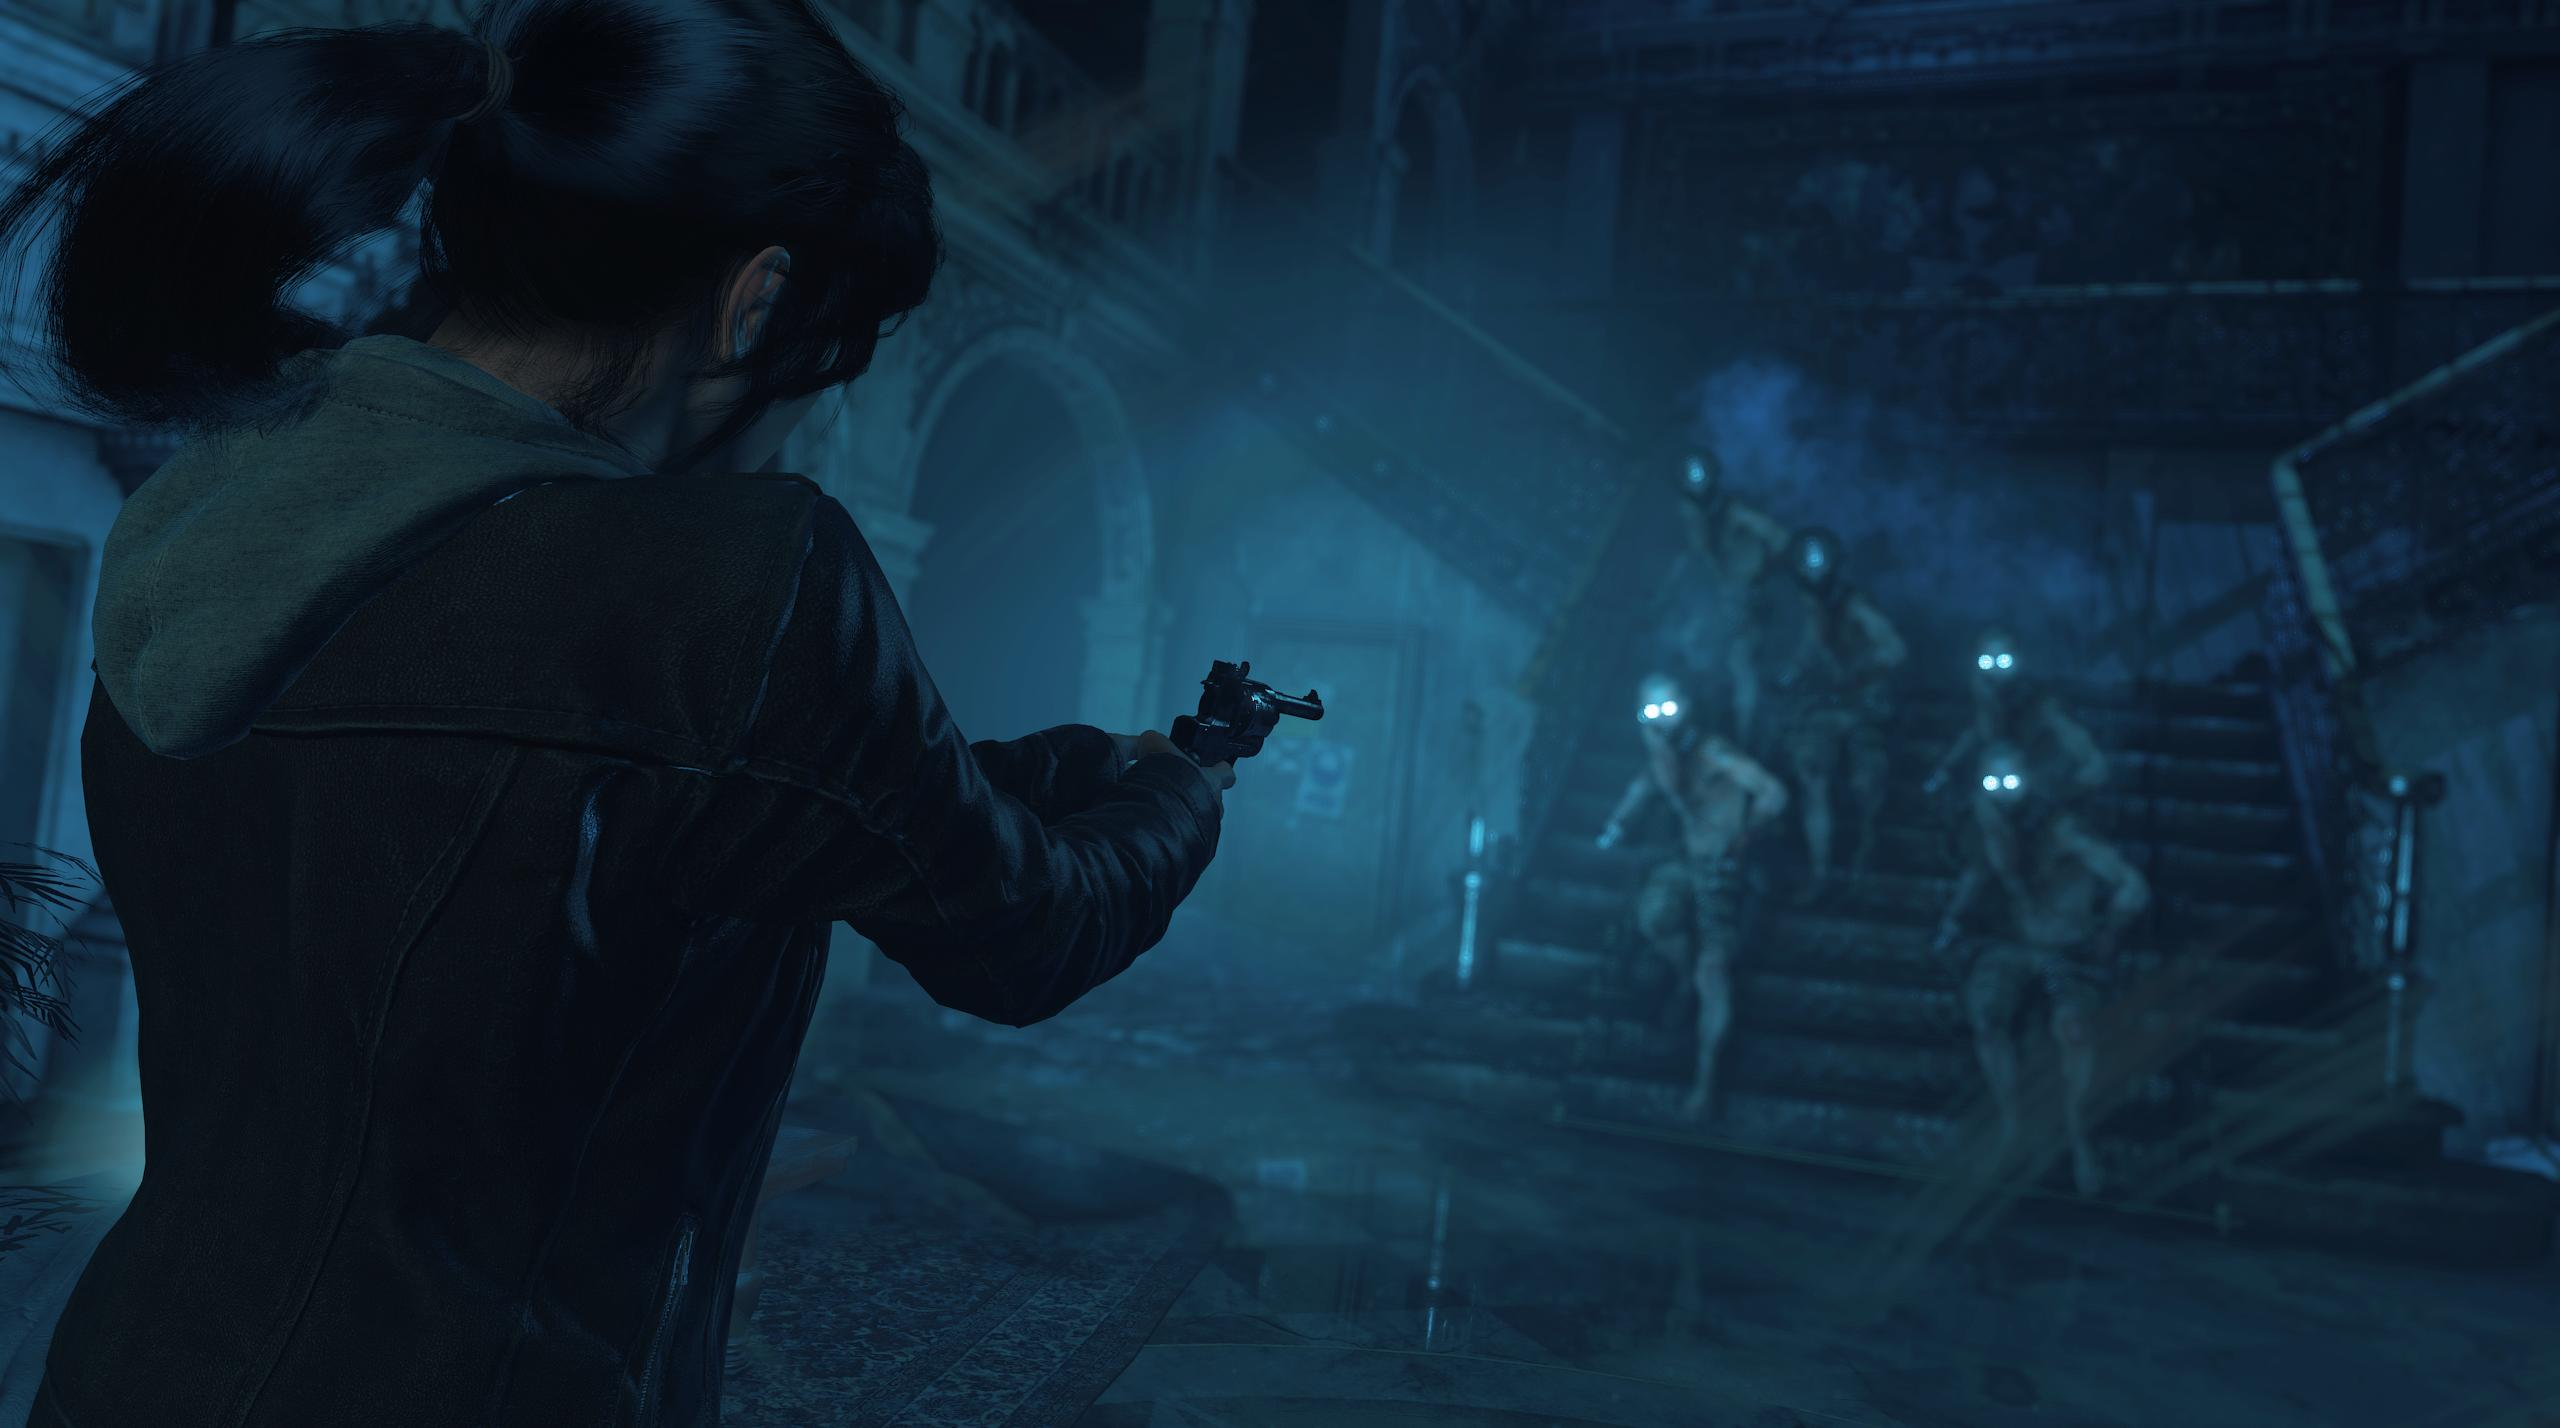 Rise-of-the-Tomb-Raider_2016_08-17-16_007